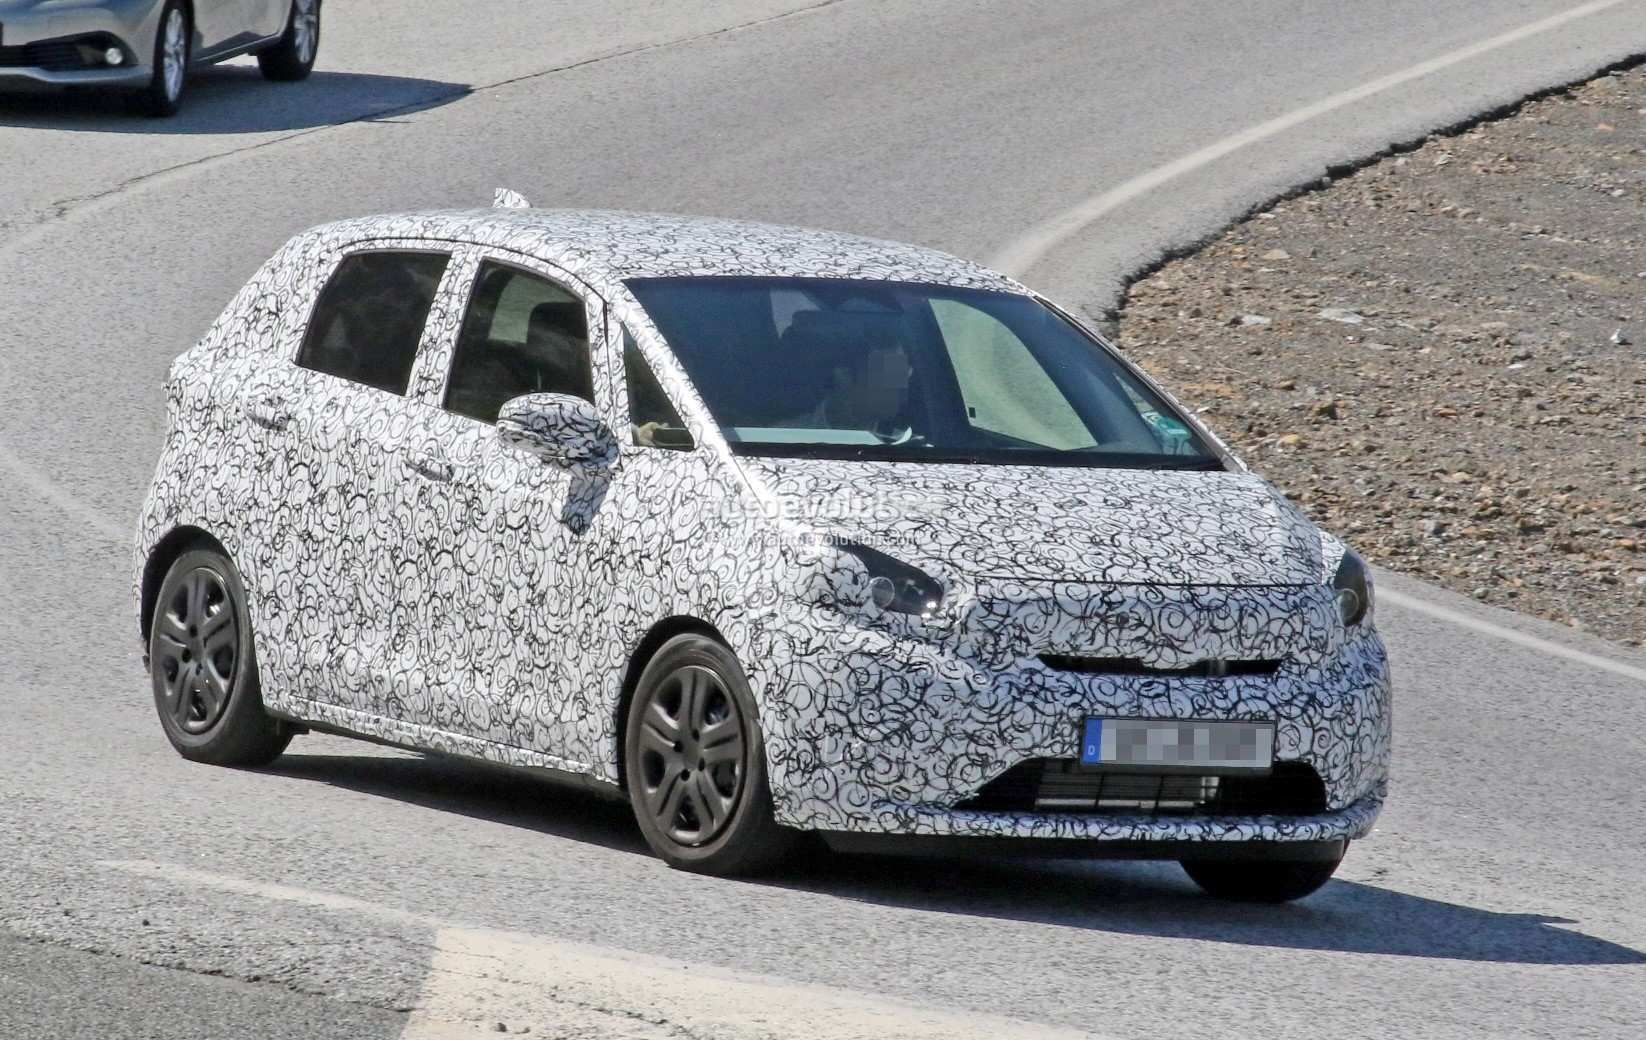 91 New Honda Jazz 2020 Release Date Picture for Honda Jazz 2020 Release Date